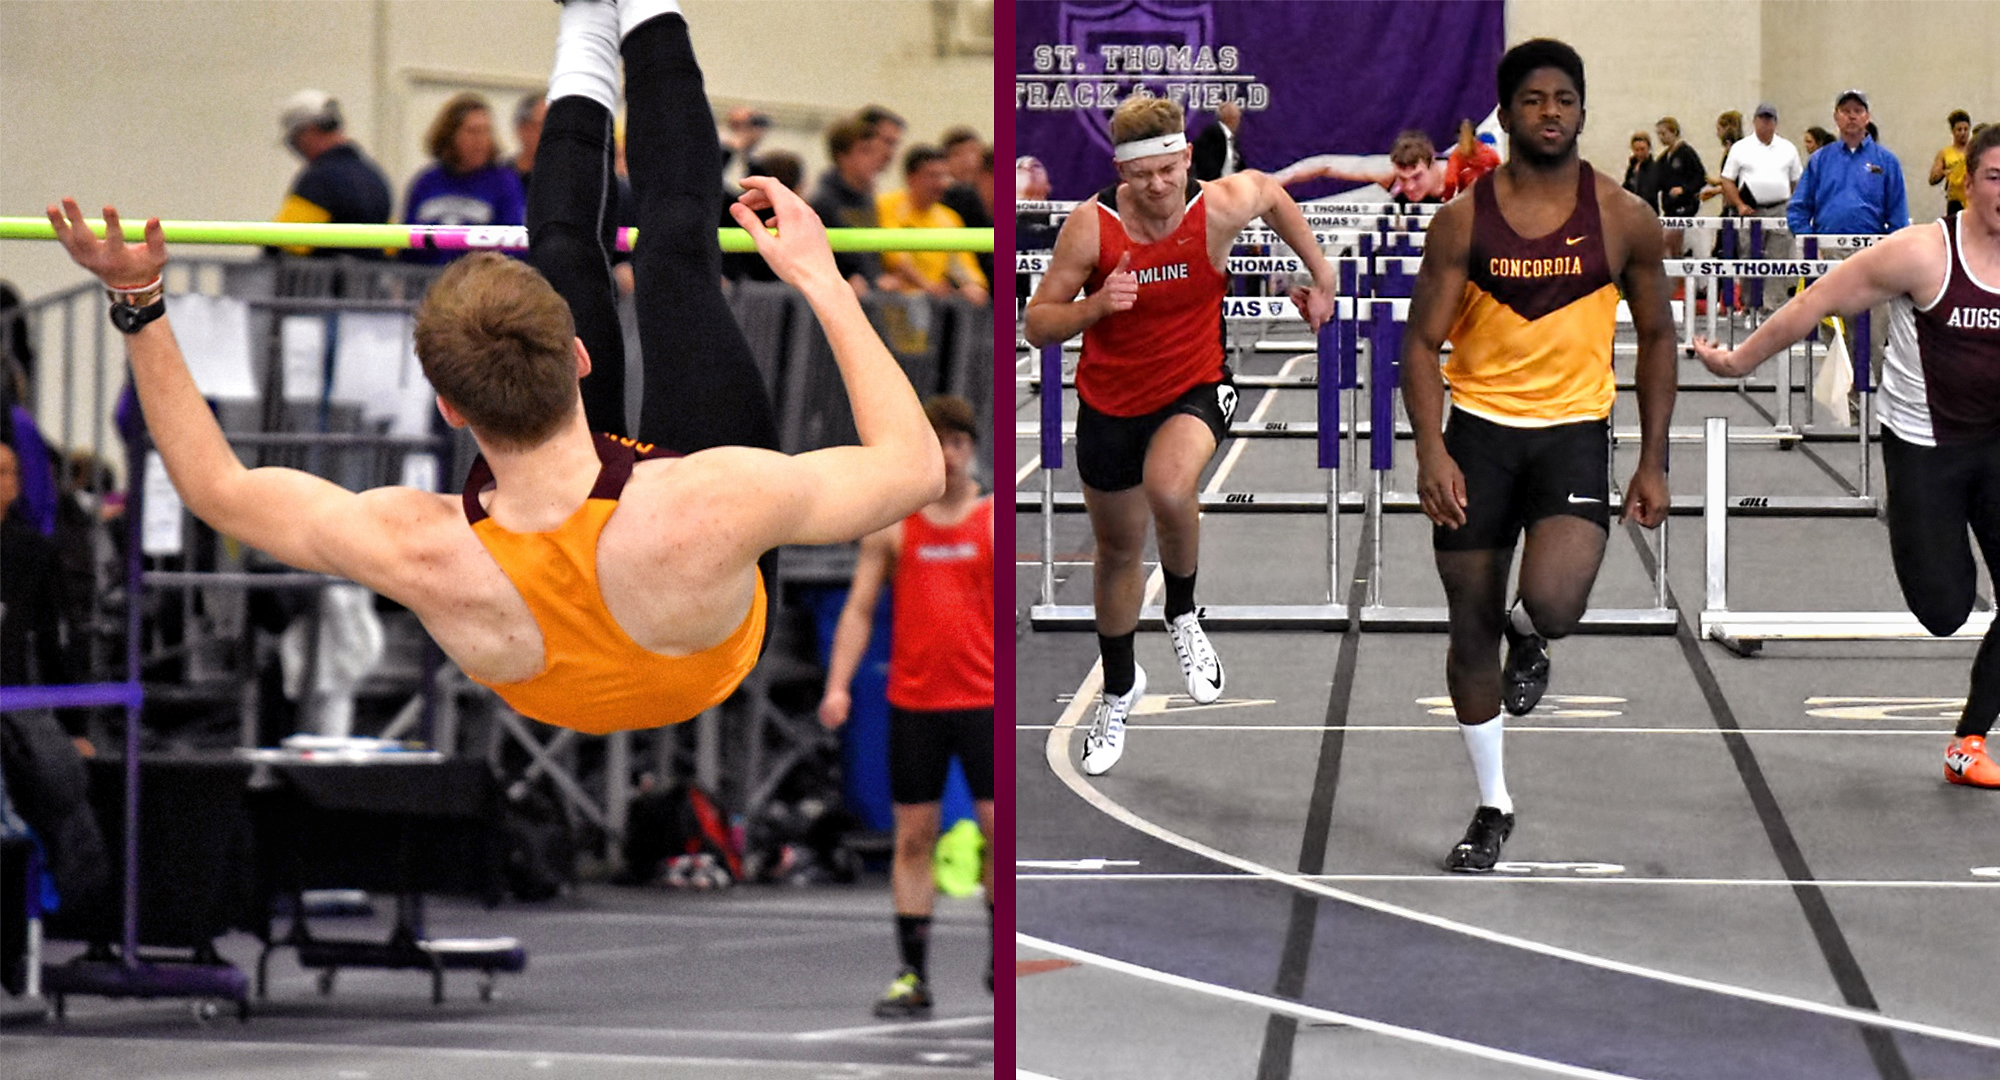 Jackson Schepp (L) broke the school record in the heptathlon and Willie Julkes III broke the 60-meter hurdles school mark on Day 1 at the MIAC Meet. (Photos courtesy of Matt Higgins - MIAC Office)